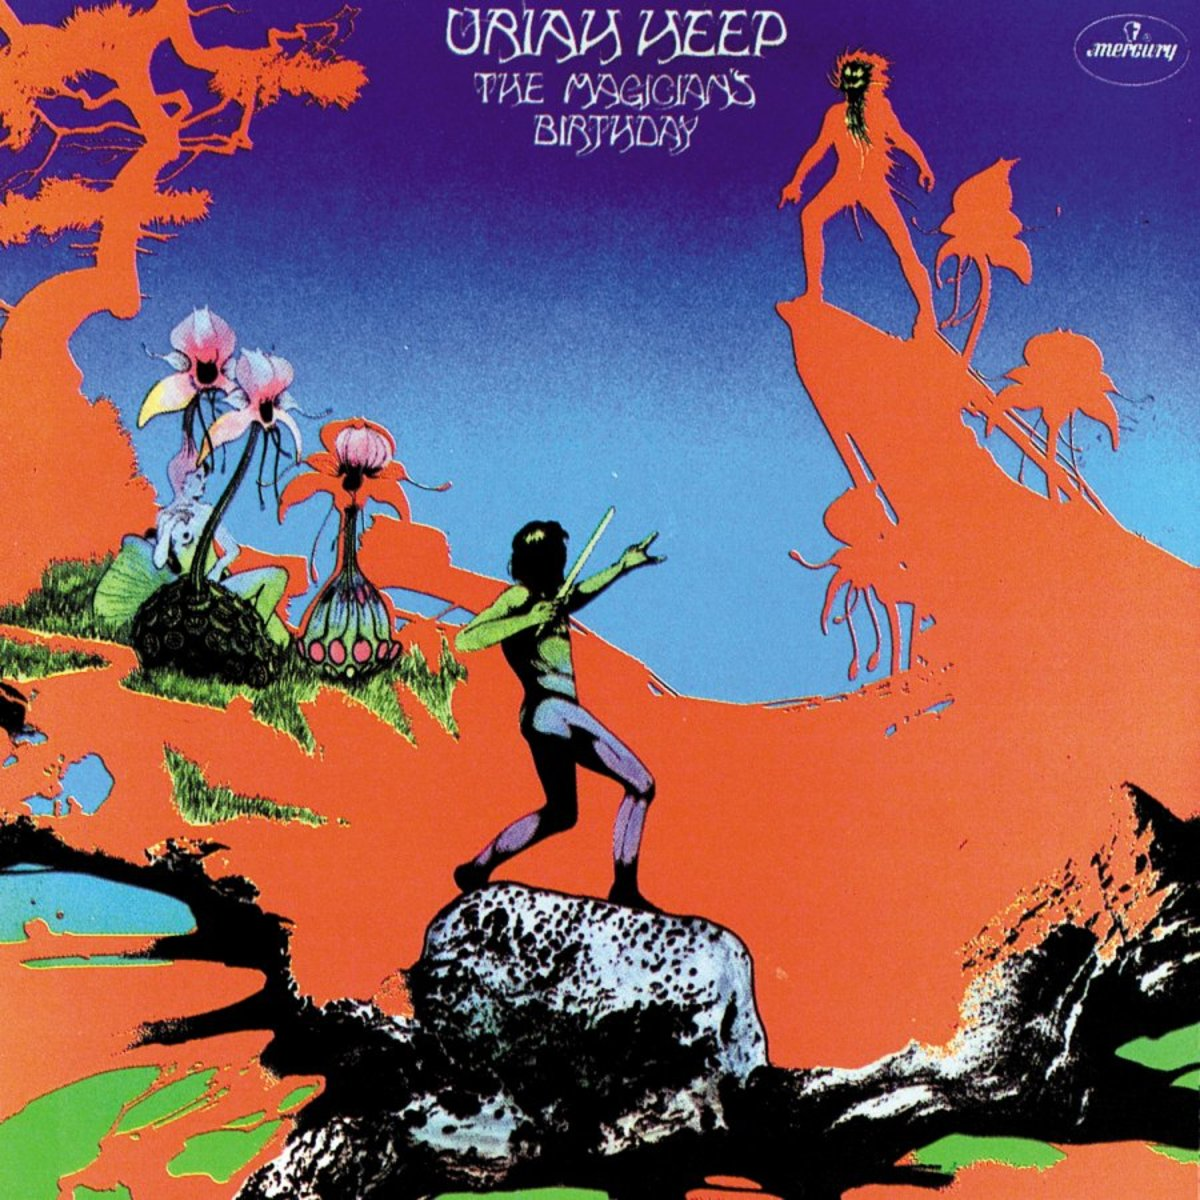 "Uriah Heep ""The Magicians Birthday"" Mercury Records SRM-1 652 12"" LP Vinyl Record, US Pressing (1972) Gatefold Album Cover Art & Design by Roger Dean"